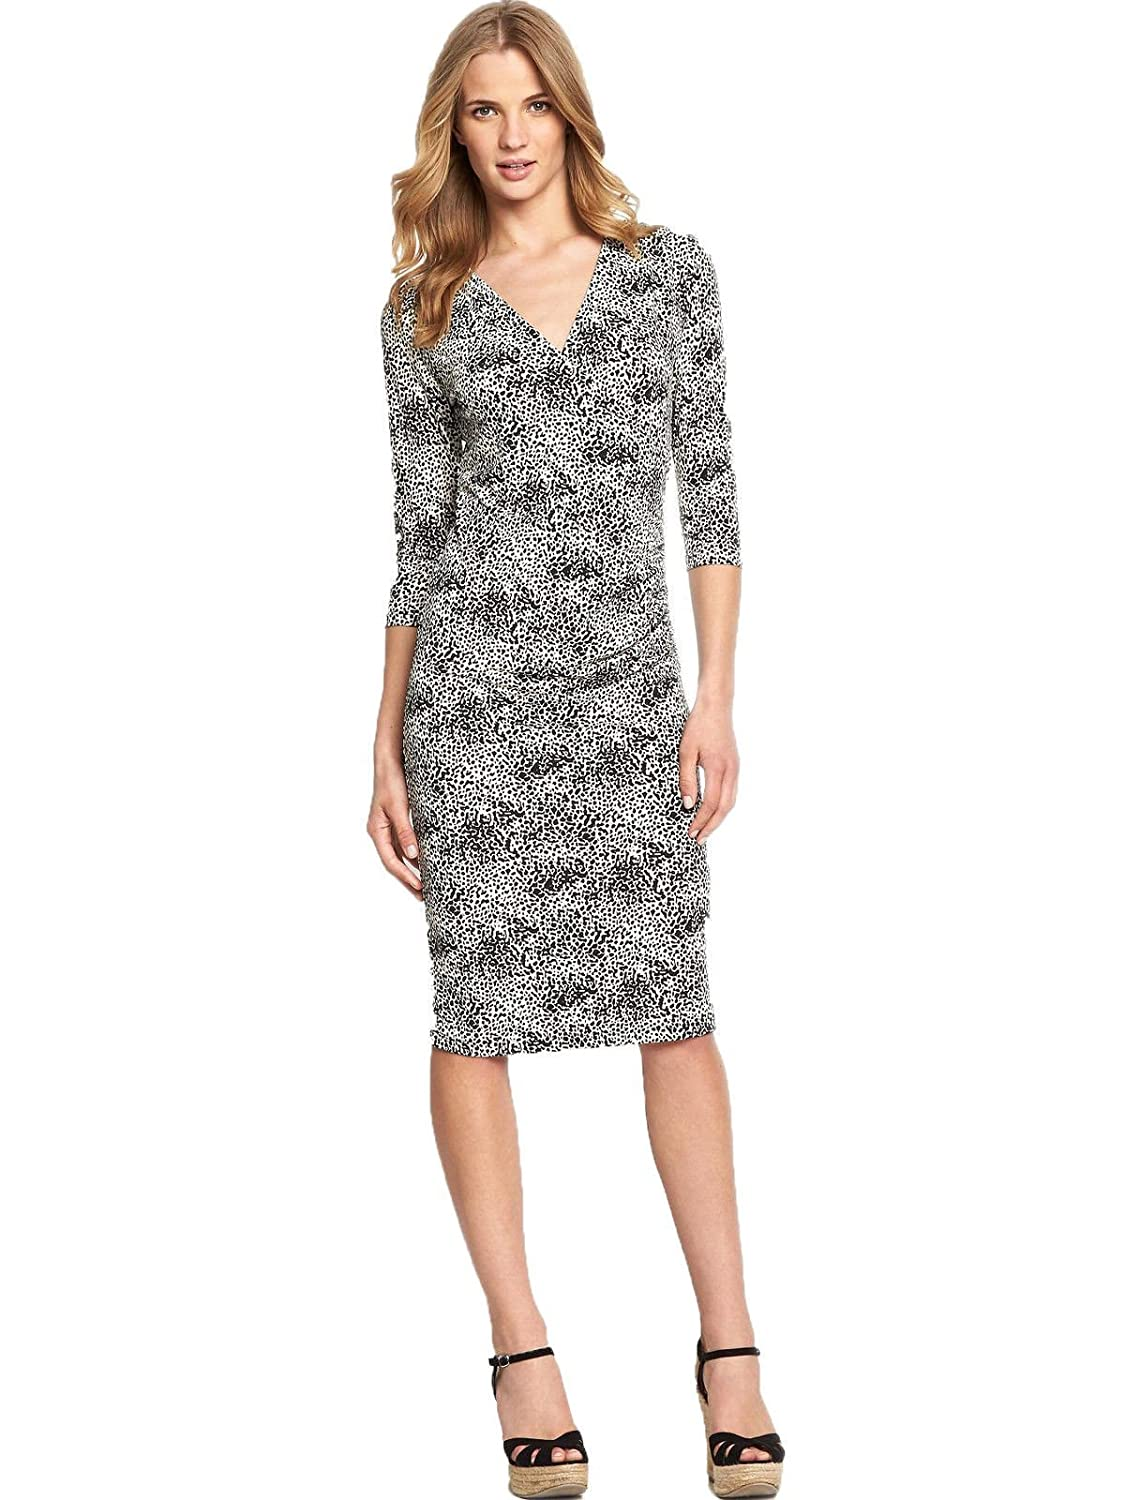 Ladies South Animal Print Ruched Side Wrap Style Stretchy Dress. Sizes 18-22